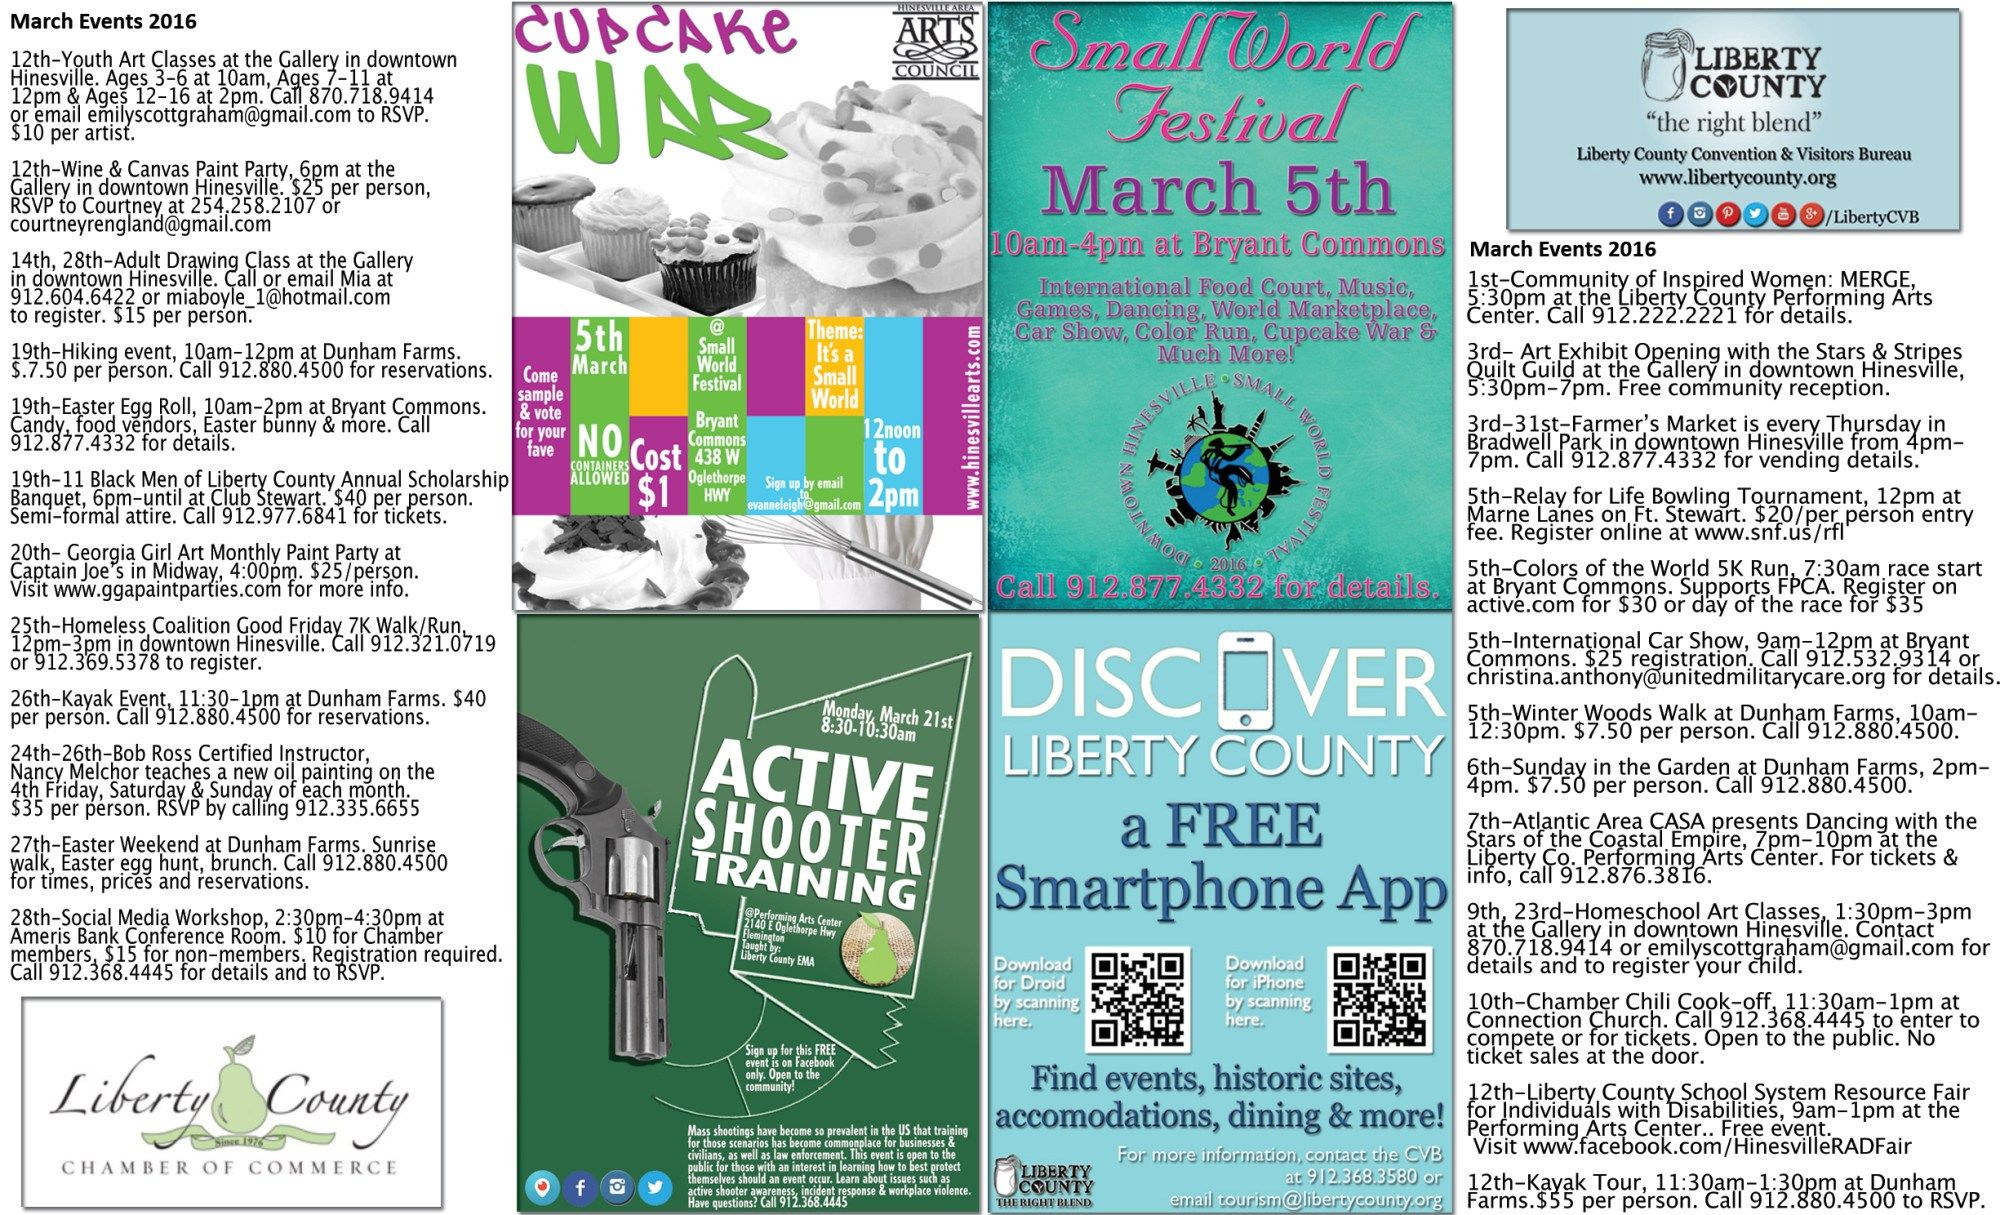 Calendar of eventsmarch 2016 liberty county event